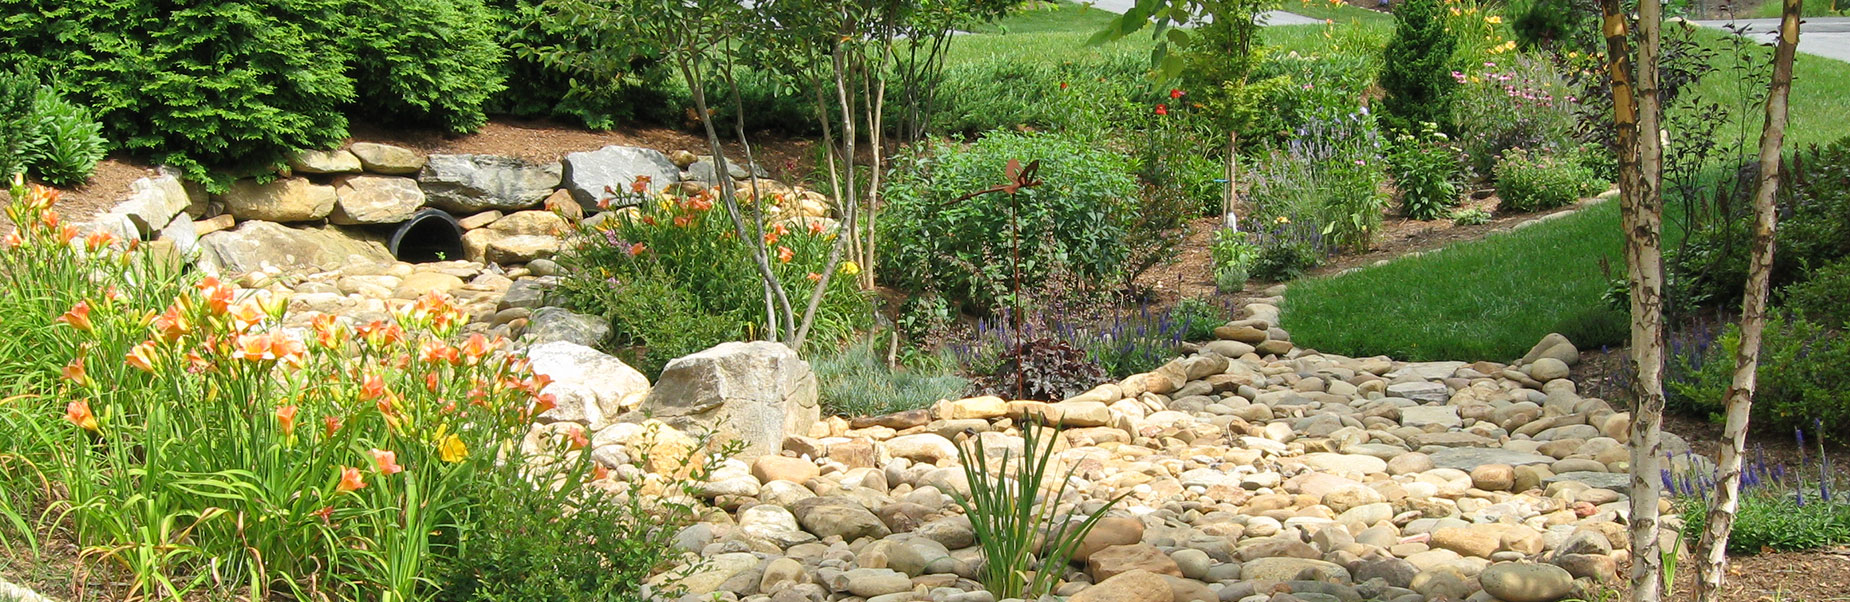 Cohesion Land Design offers professional design and horticultural knowledge